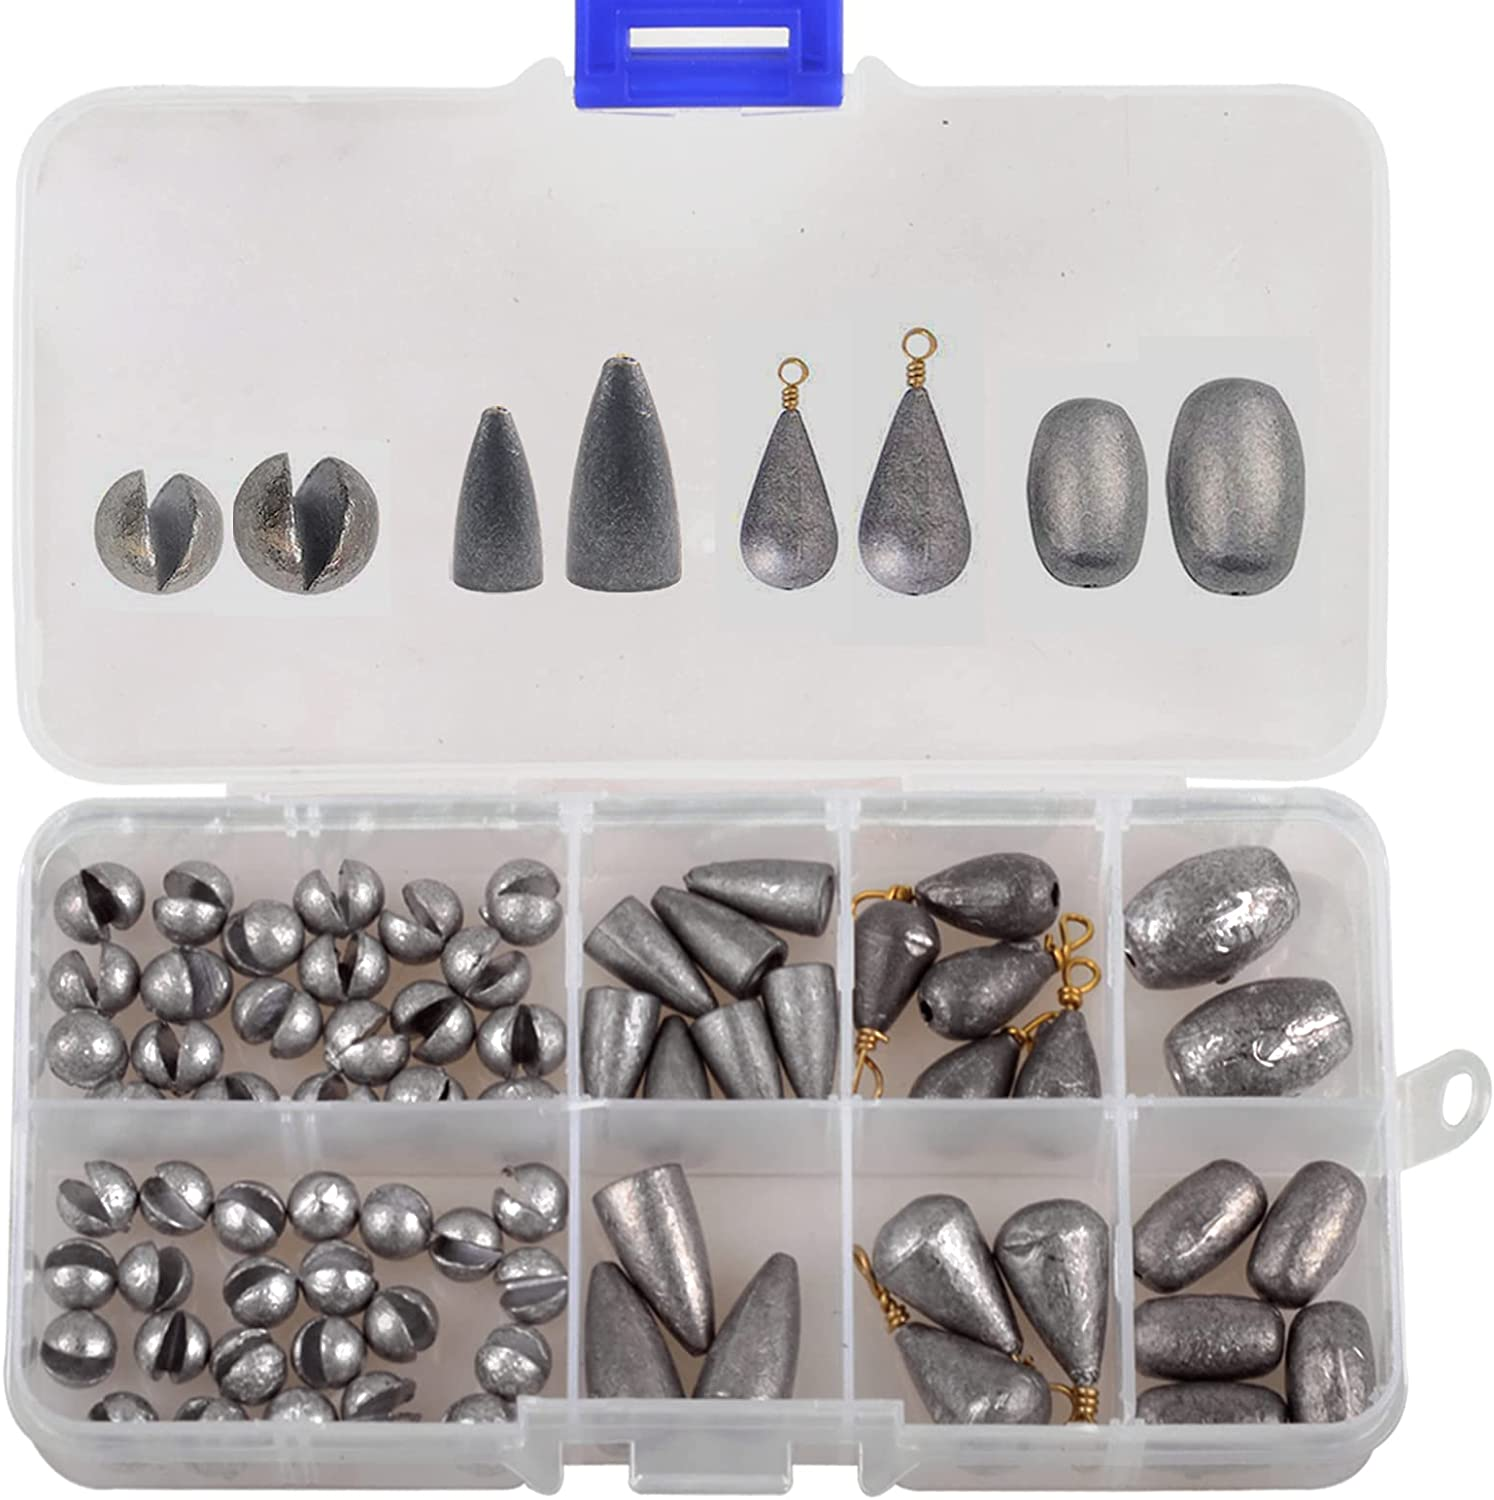 100Pcs//Set Line Sinkers Weights Hook Connector Round Shaped Fishing Lead Tools